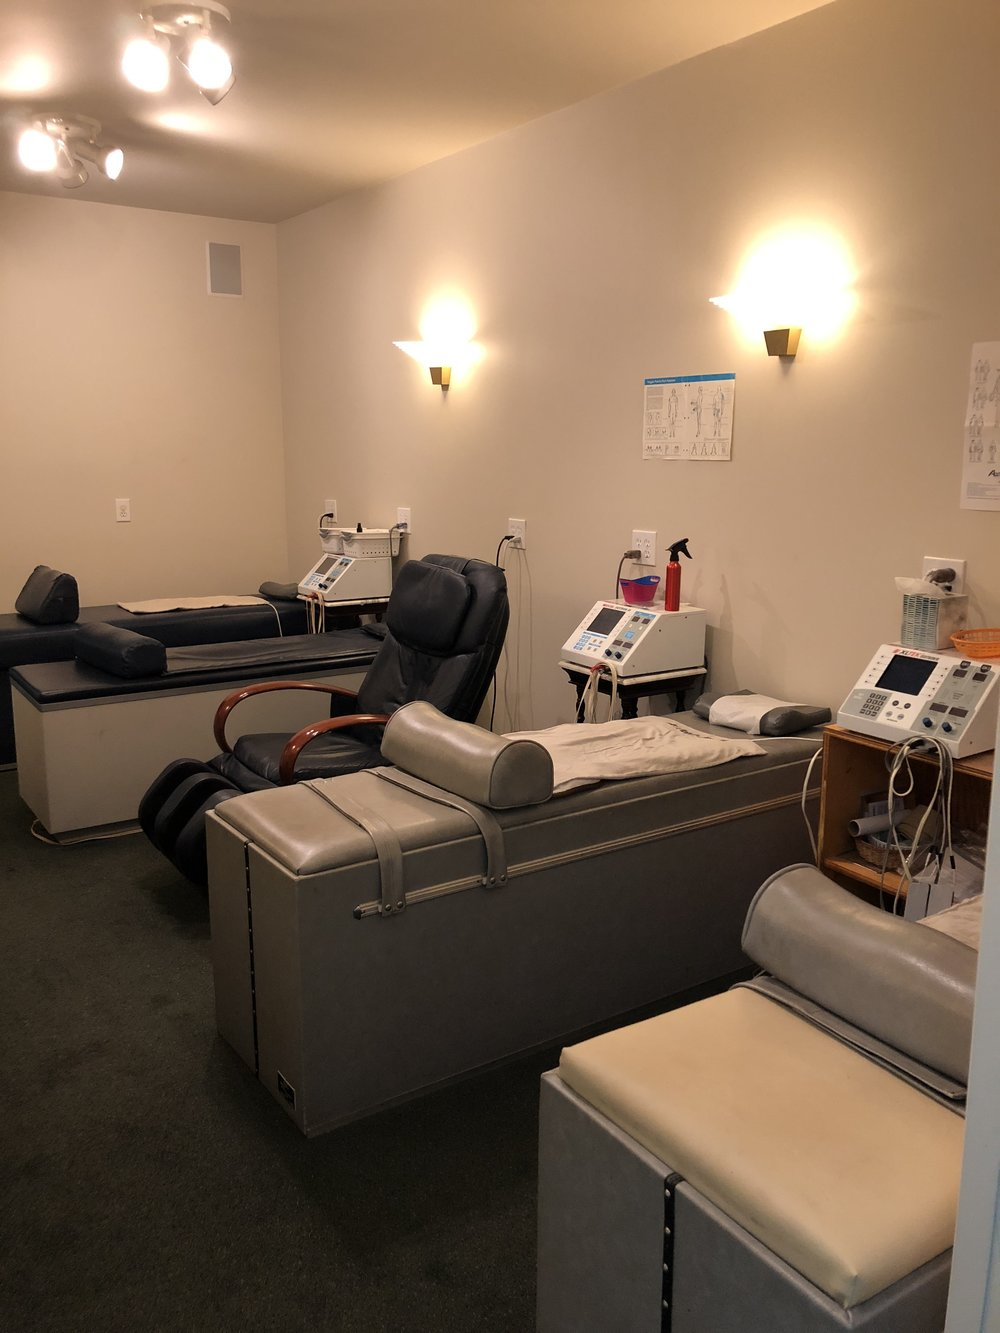 IMG_1694.JPG/therapy room